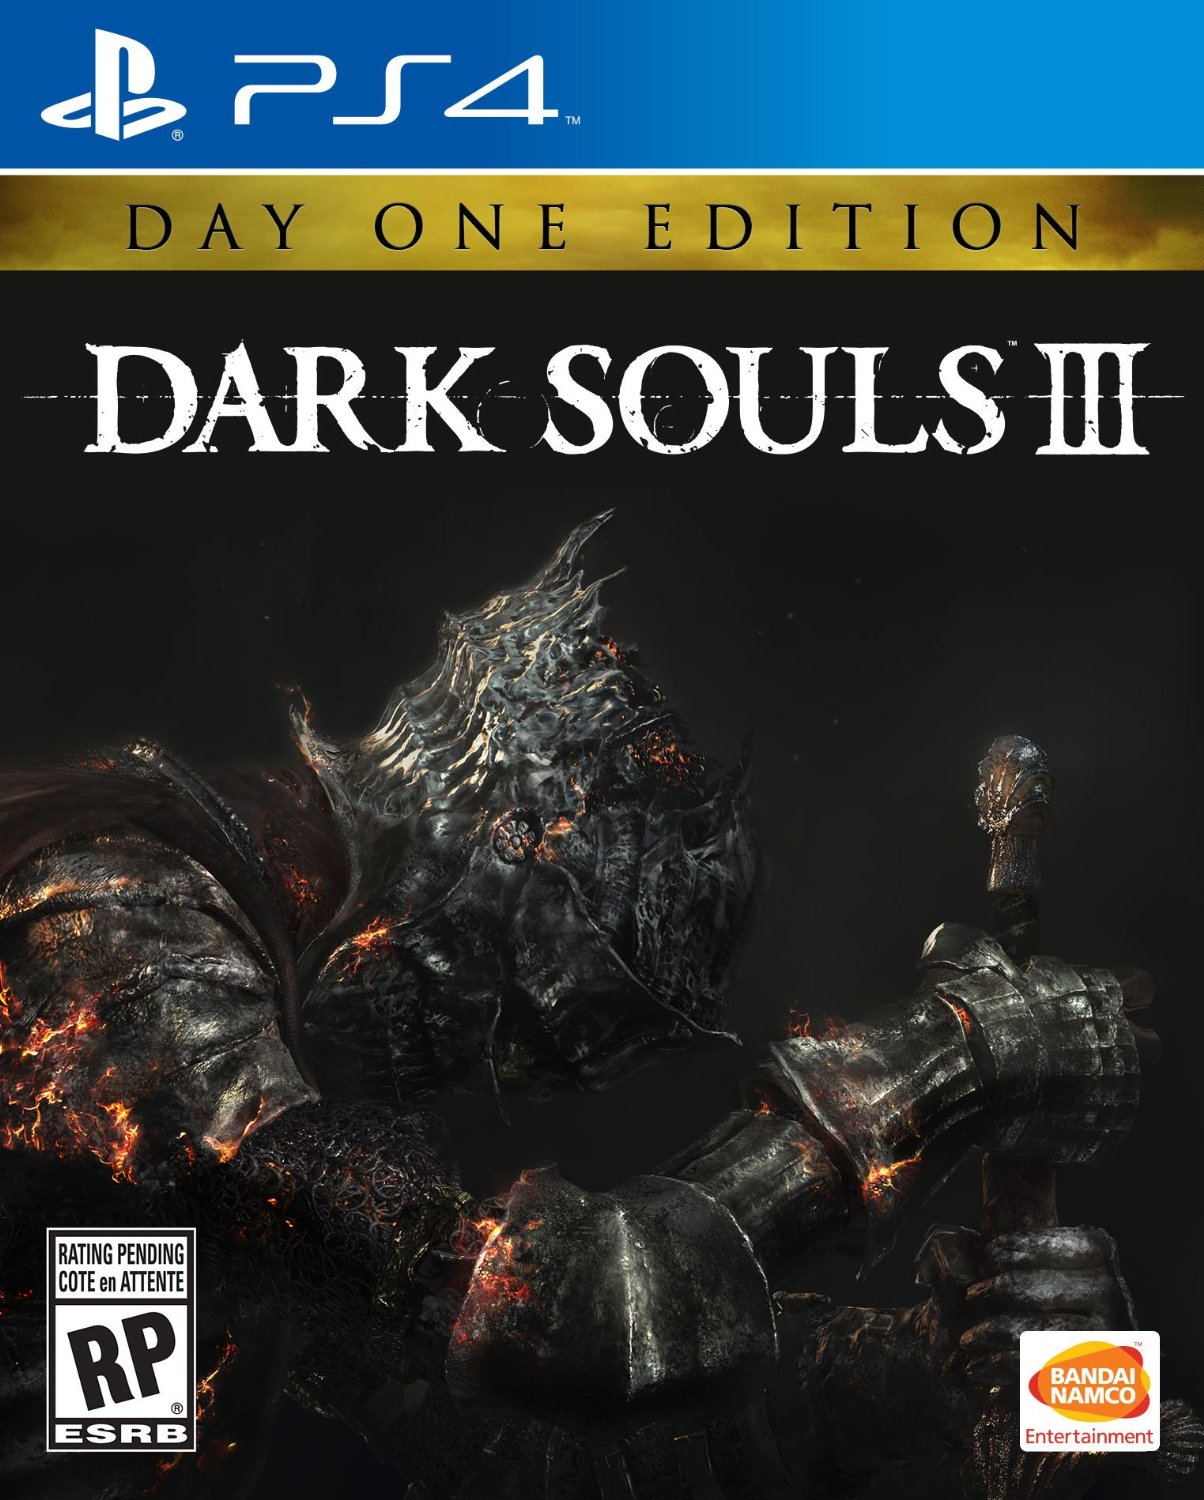 New & used video games: dark souls iii: day 1 edition.